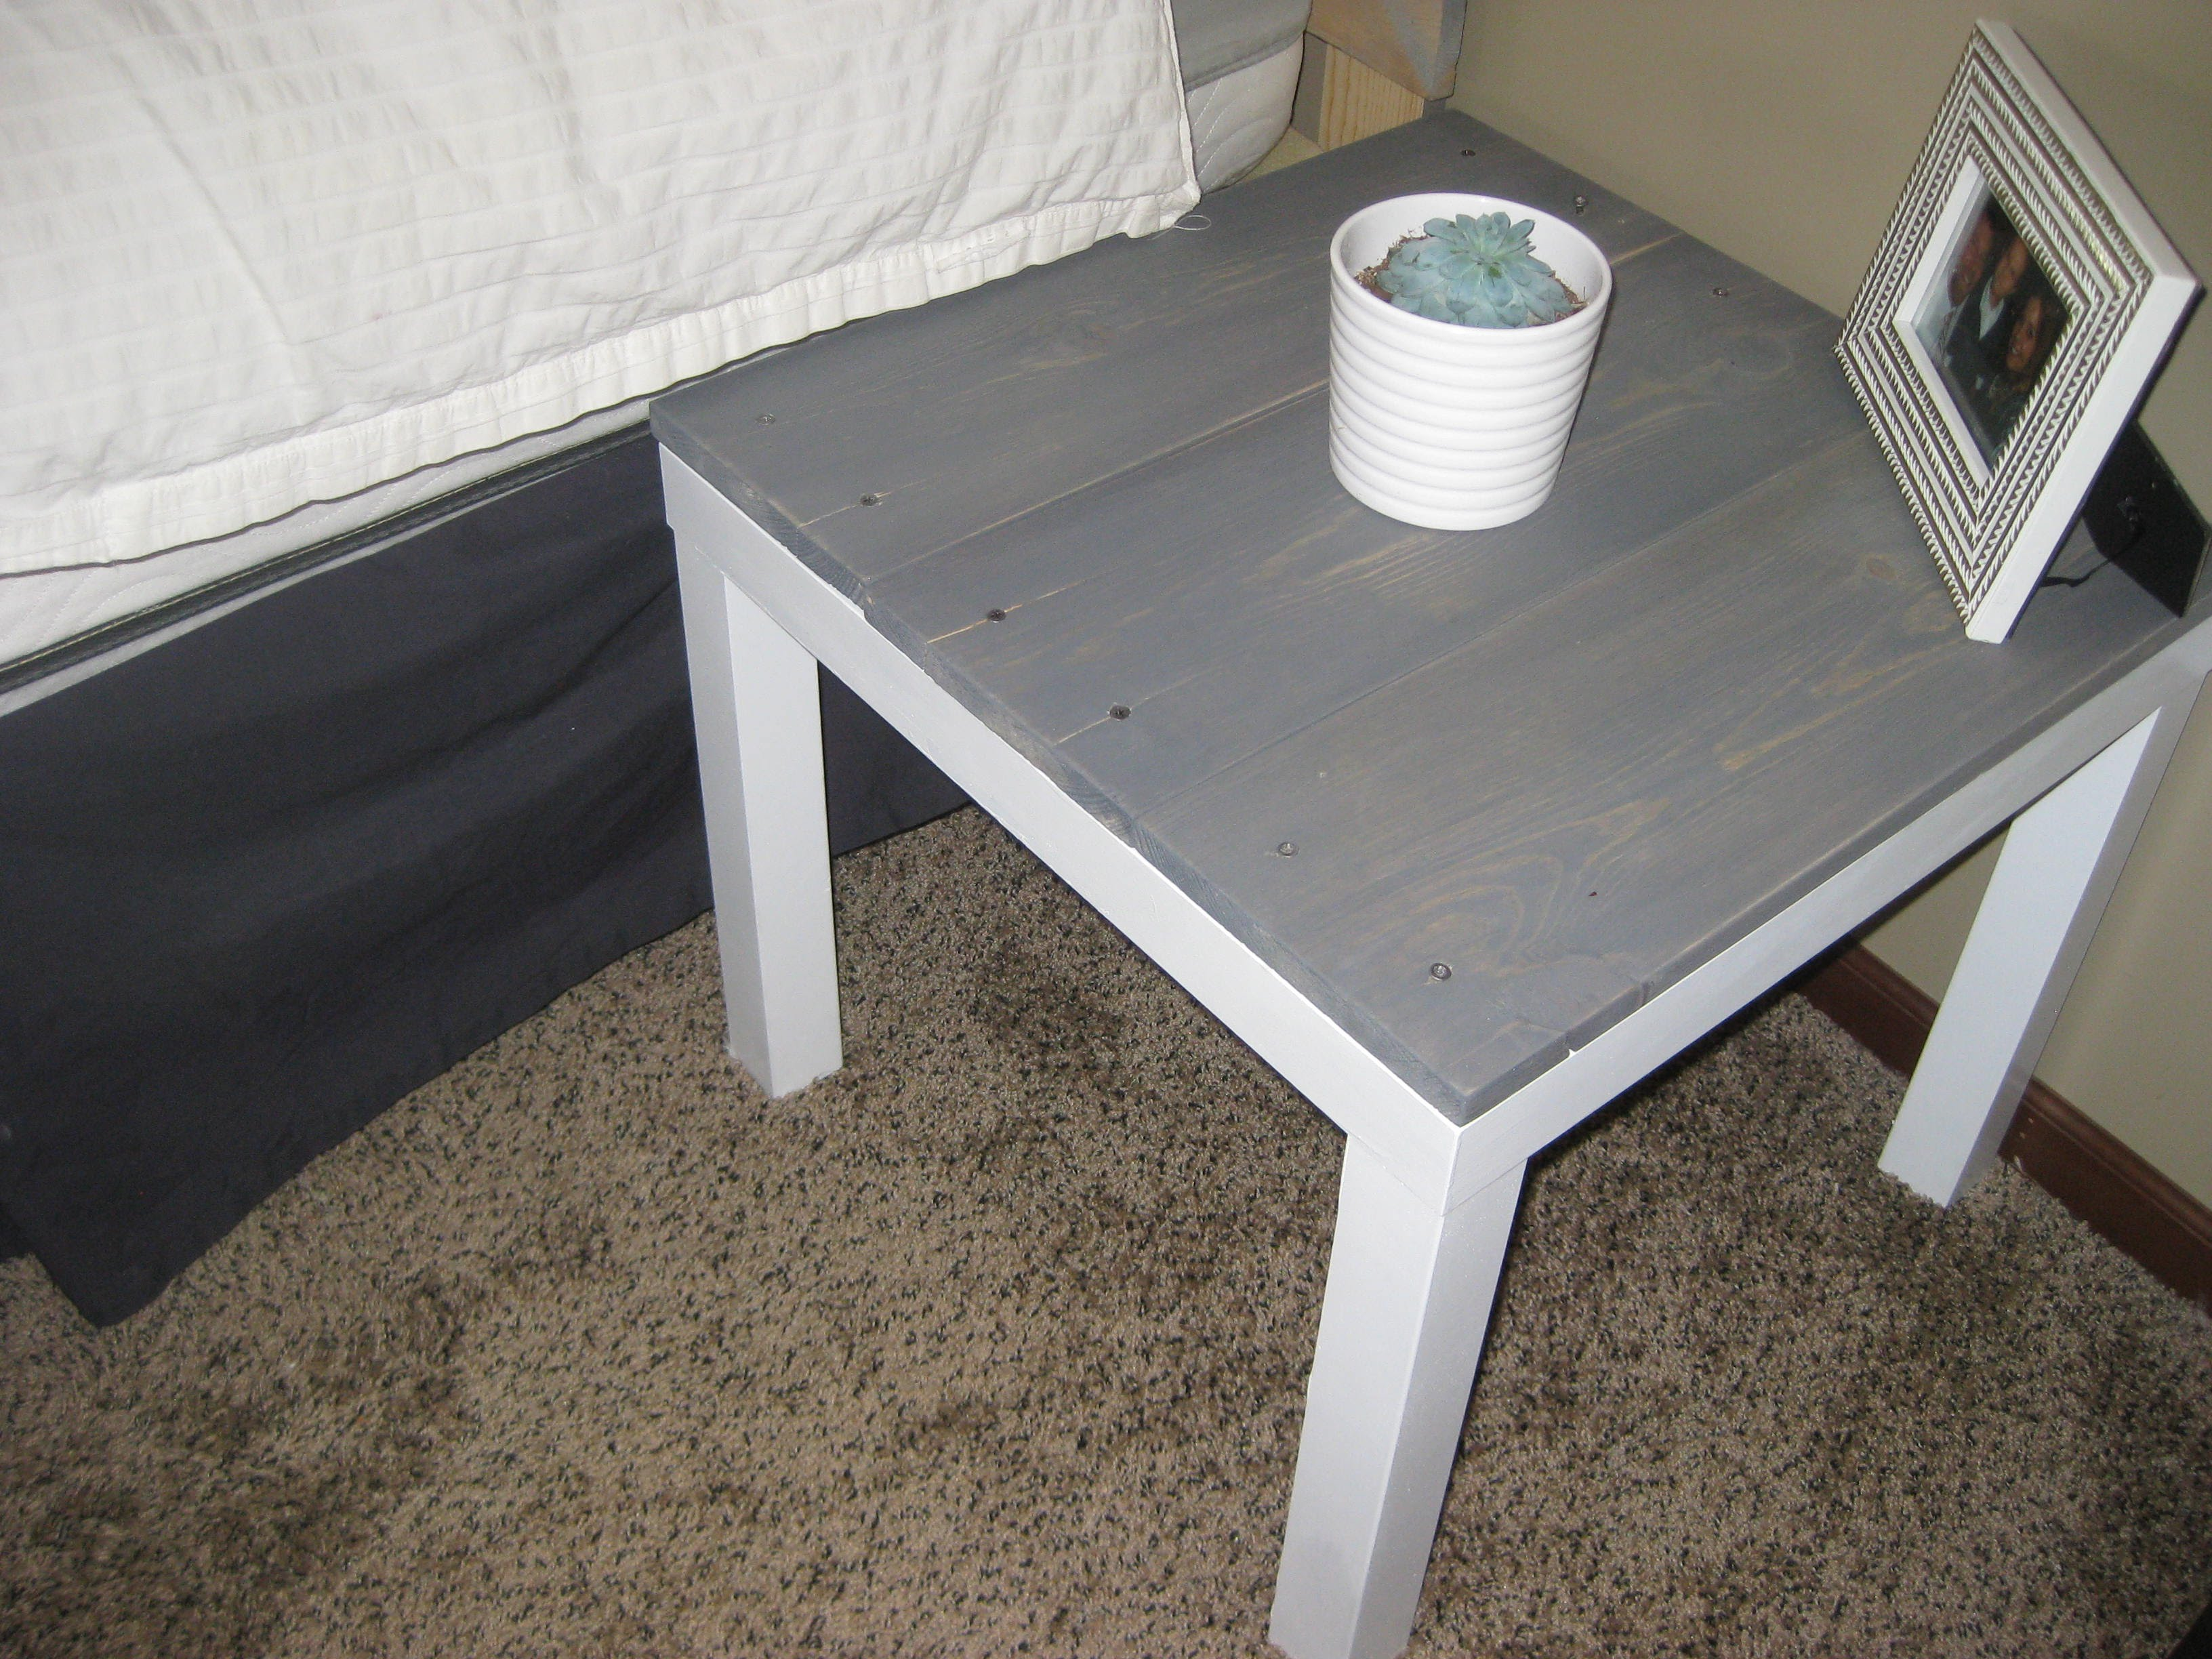 diy end table ikea hack for under cat litter box easy country runners hobby lobby accent tables gold sofa living room centerpiece round extendable dining and chairs turned foot